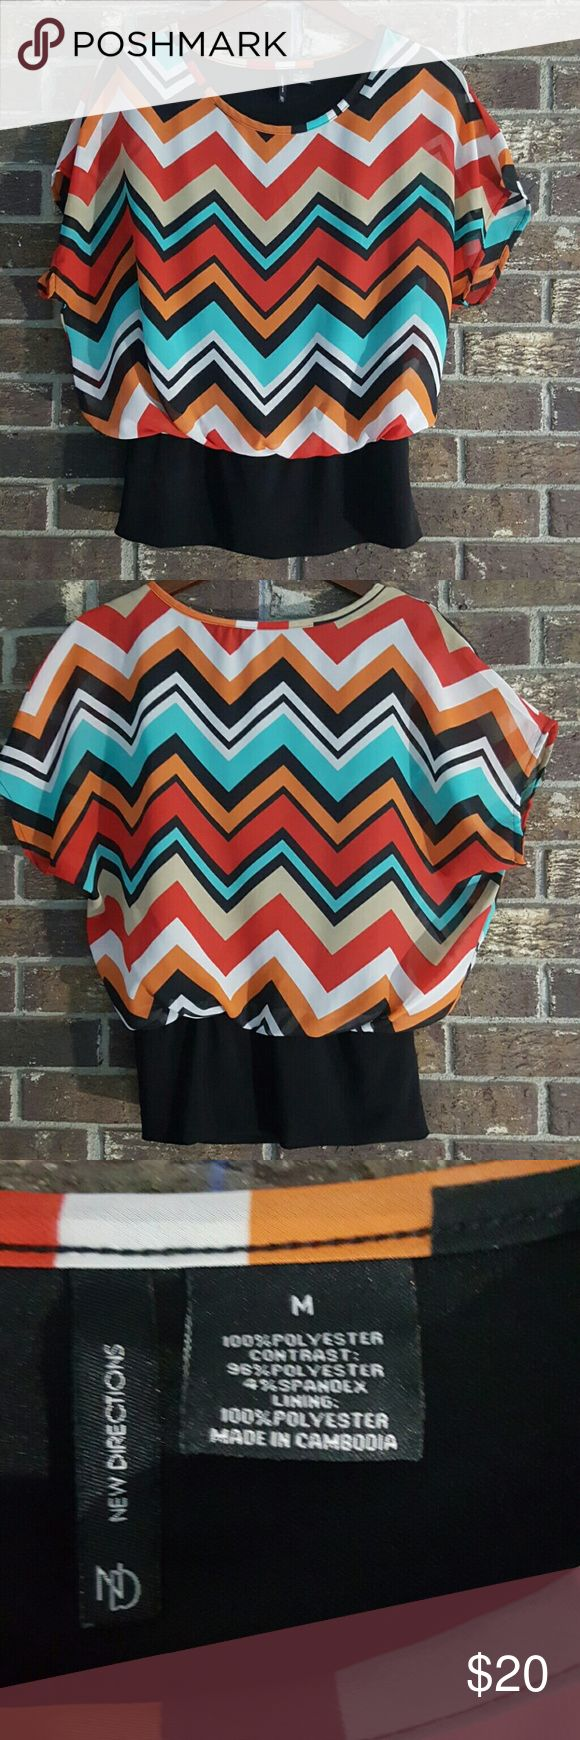 🌻 New Directions Chevron Blouse This multi color chevron blouse is in excellent condition. It has an attached torso lining and fitted stretchy band at waist. Very comfy and  extremely versatile can be dressed up or down. new directions Tops Blouses